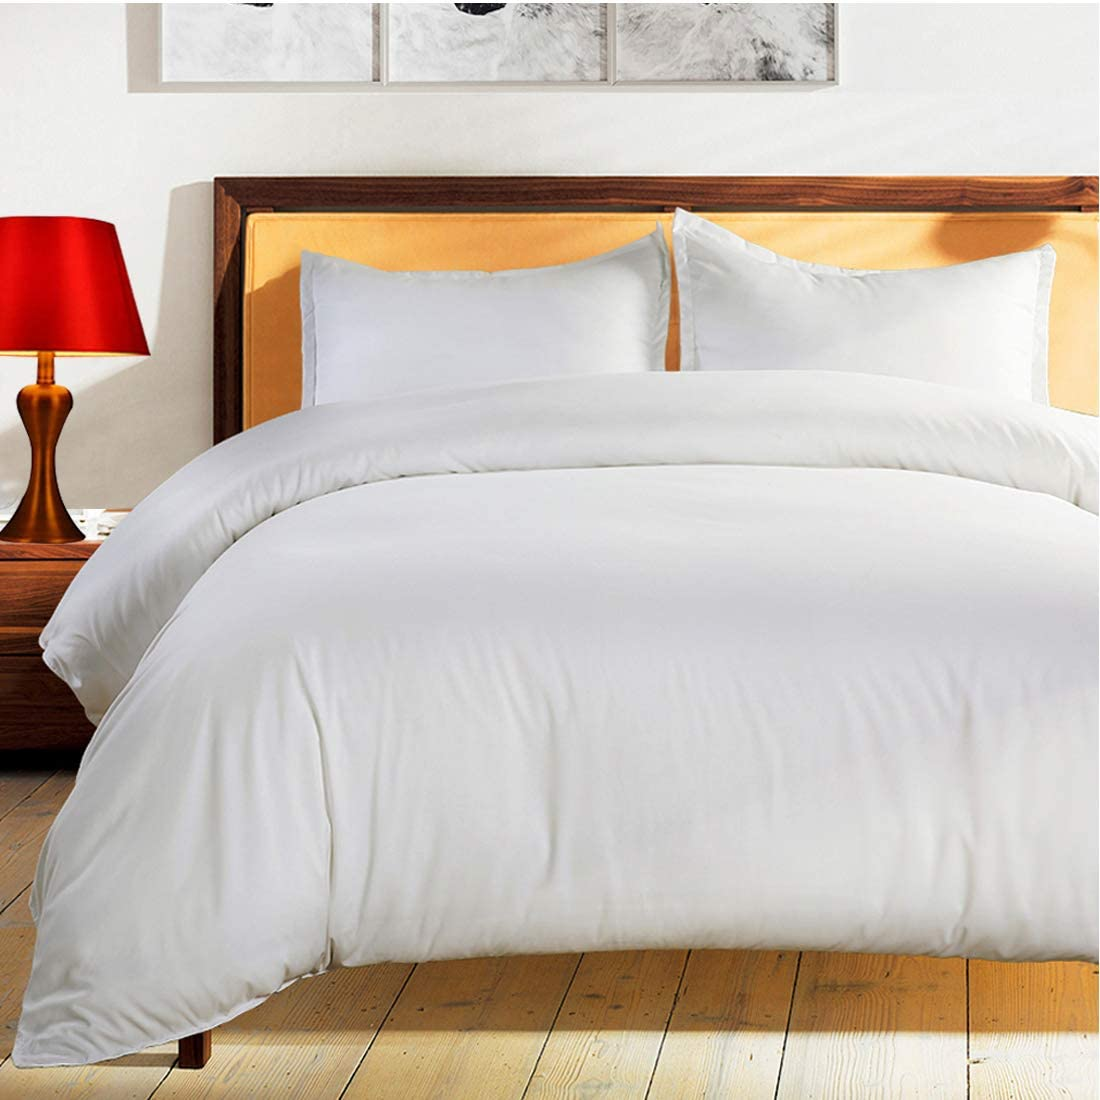 BALICHUN Duvet Cover Set Queen Size White Premium with Zipper Closure Hotel Quality Wrinkle and Fade Resistant Ultra Soft -3 Piece-1 Soft Microfiber Comforter Cover Matching 2 Pillow Shams